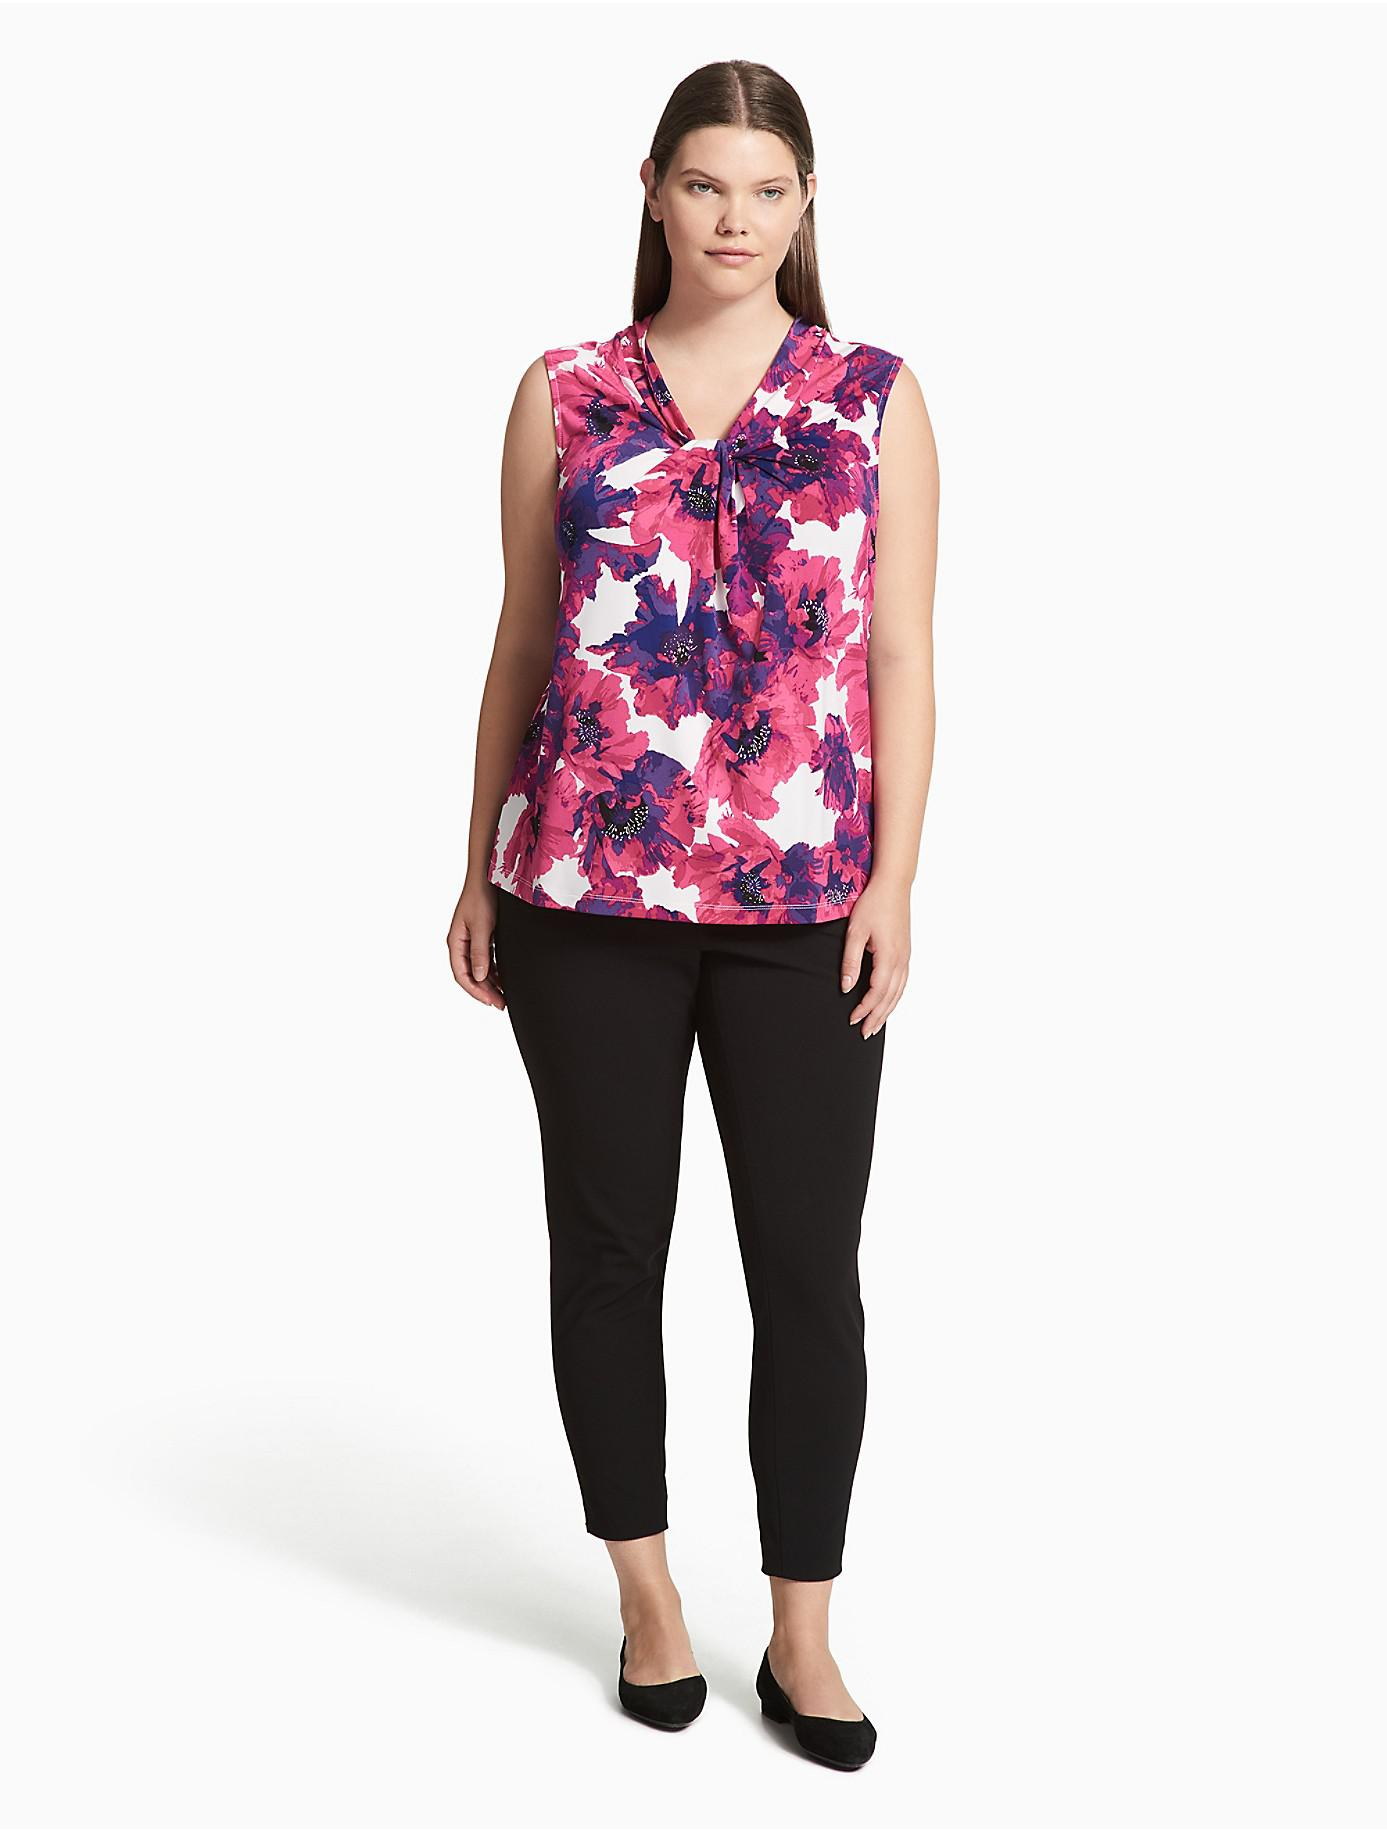 351a360c6681d Lyst - Calvin Klein Plus Size Floral Knot Neck Cami Top in Pink